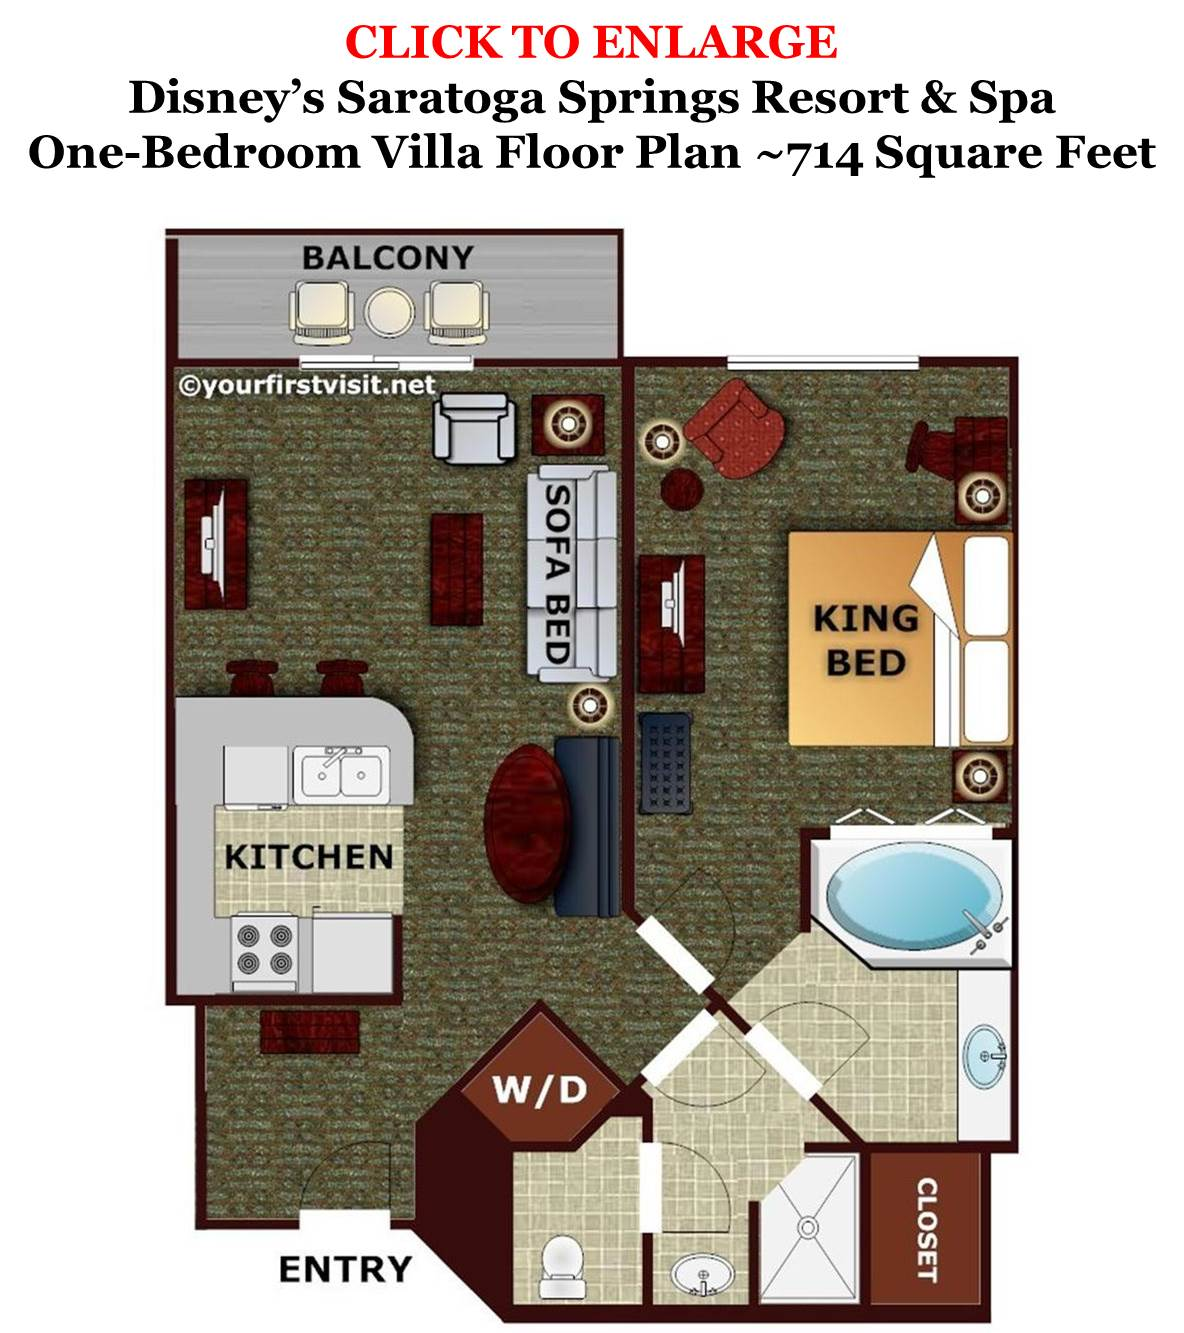 One Bedroom Villa Floor Plan Disney's Saratoga Springs Resort from yourfirstvisit.net